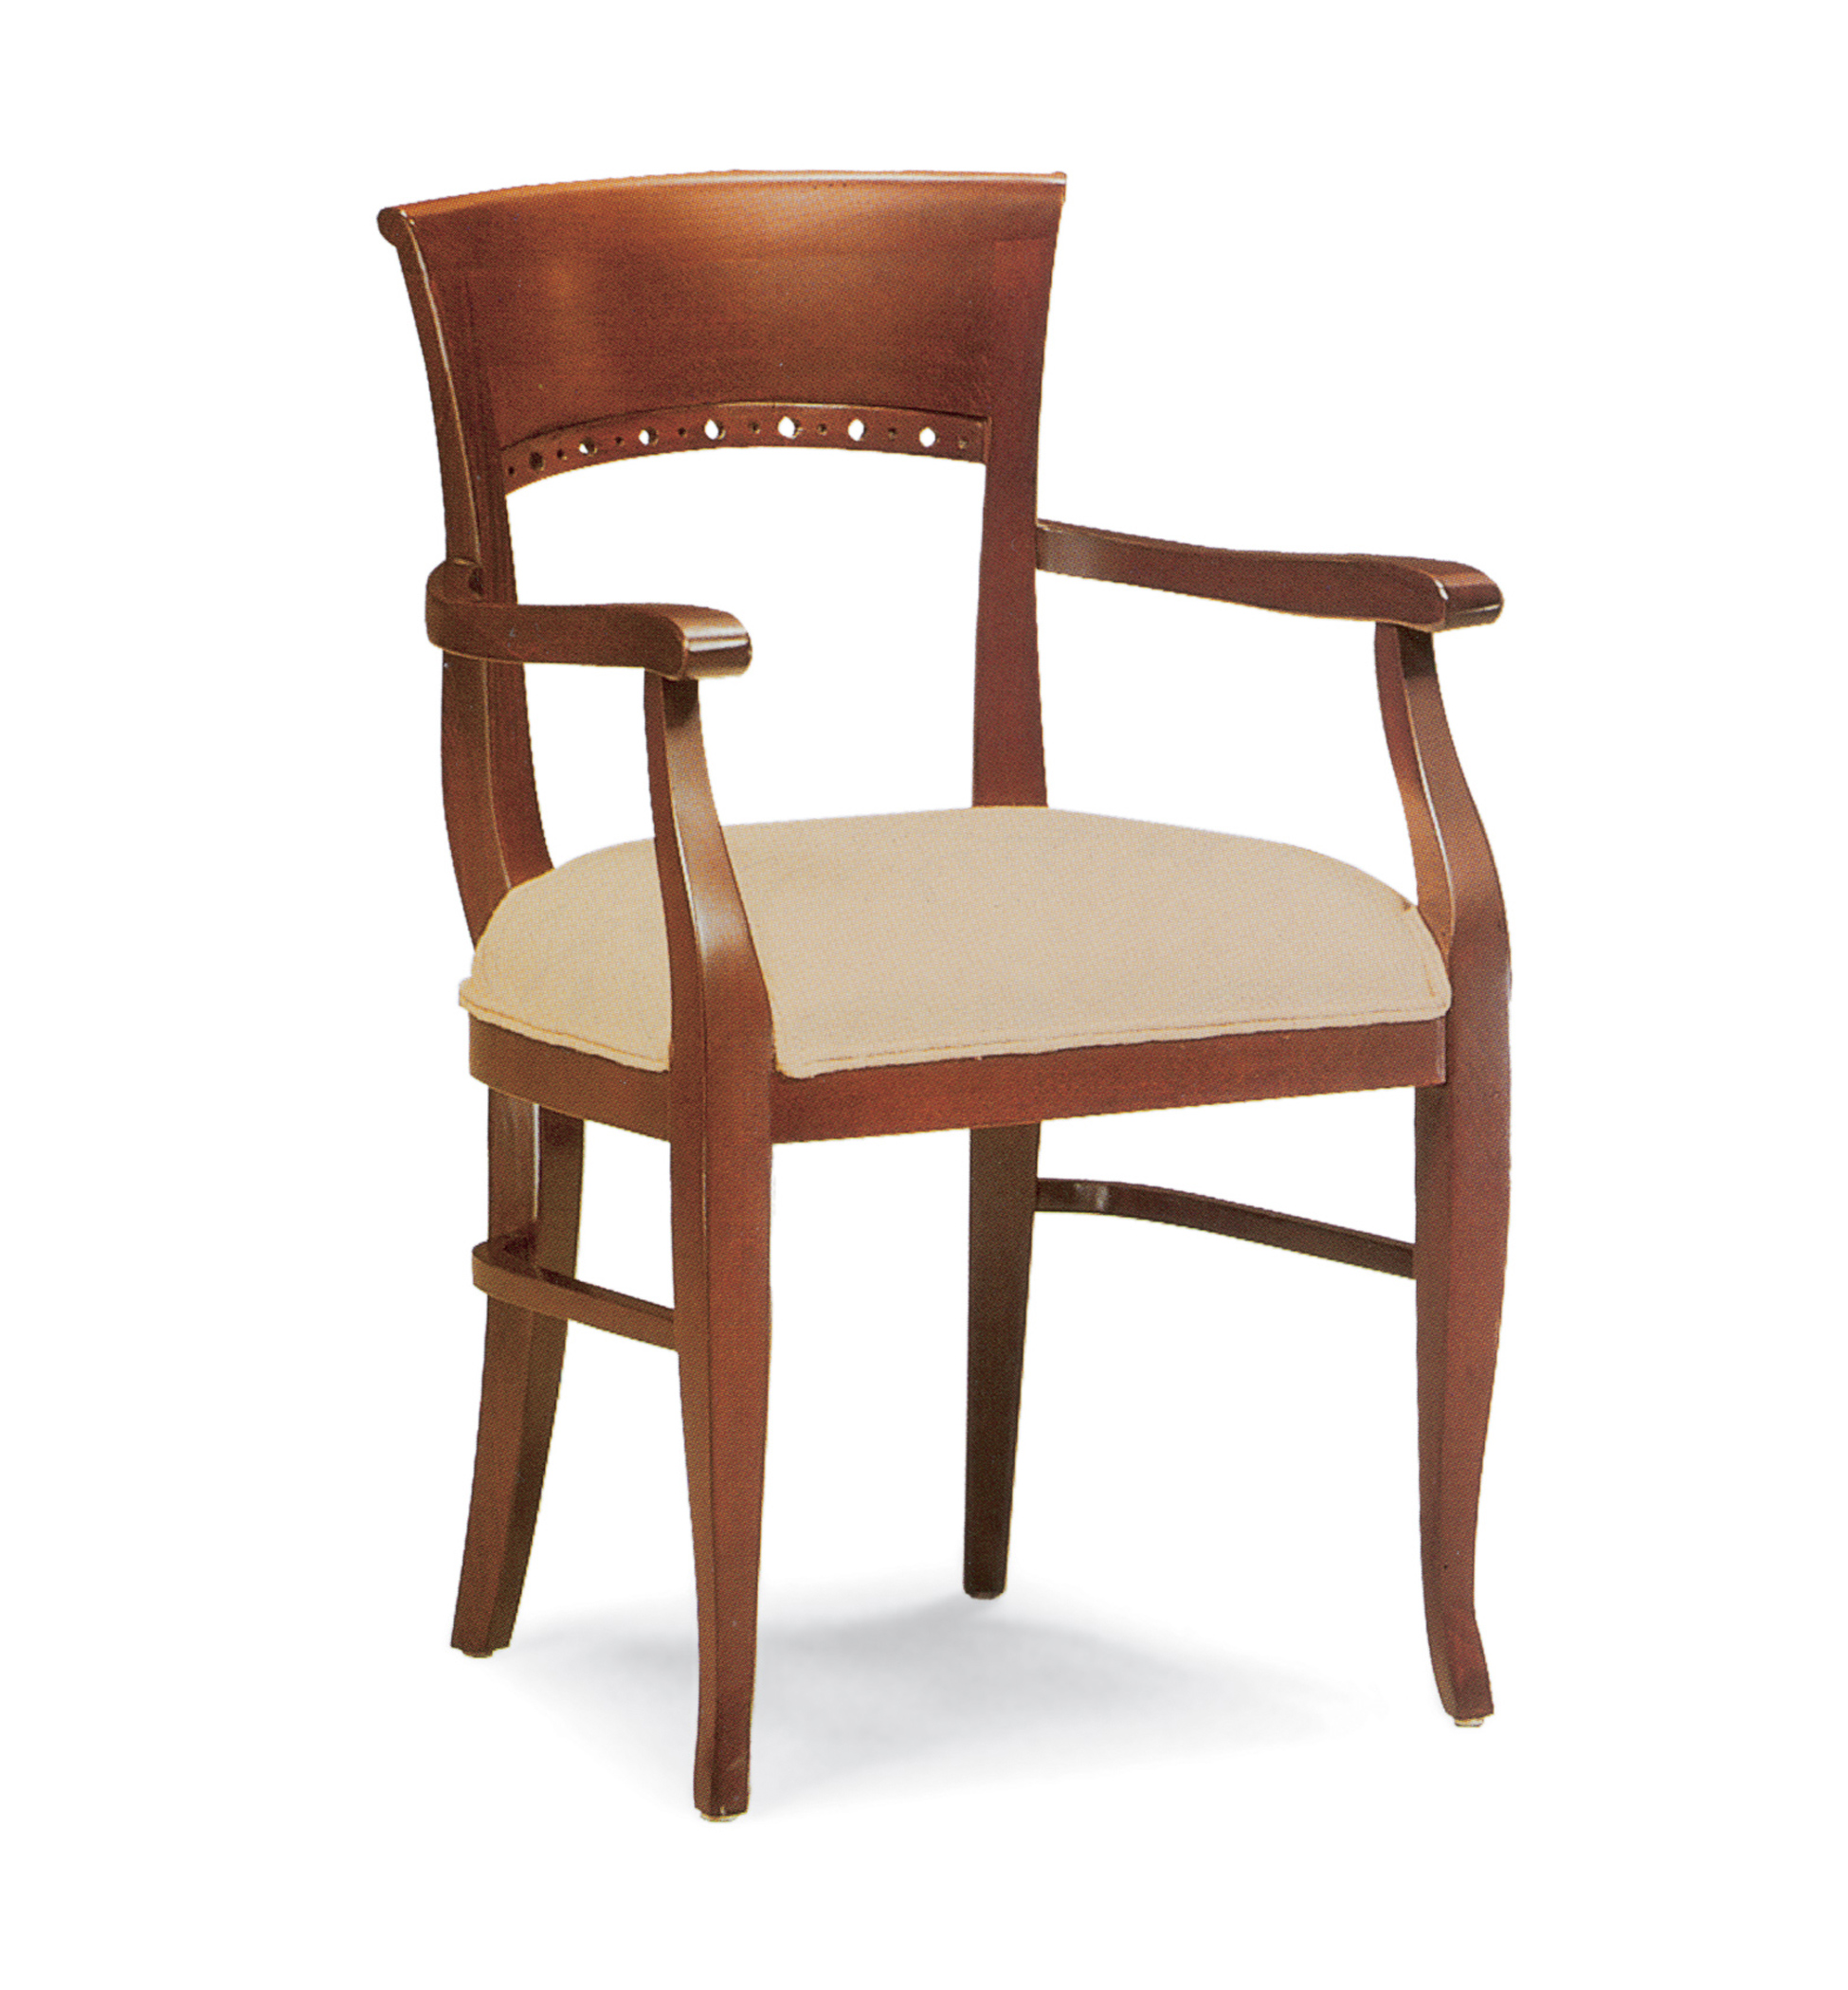 low back chairs for concerts conference room with casters 4919 1 wood arm chair